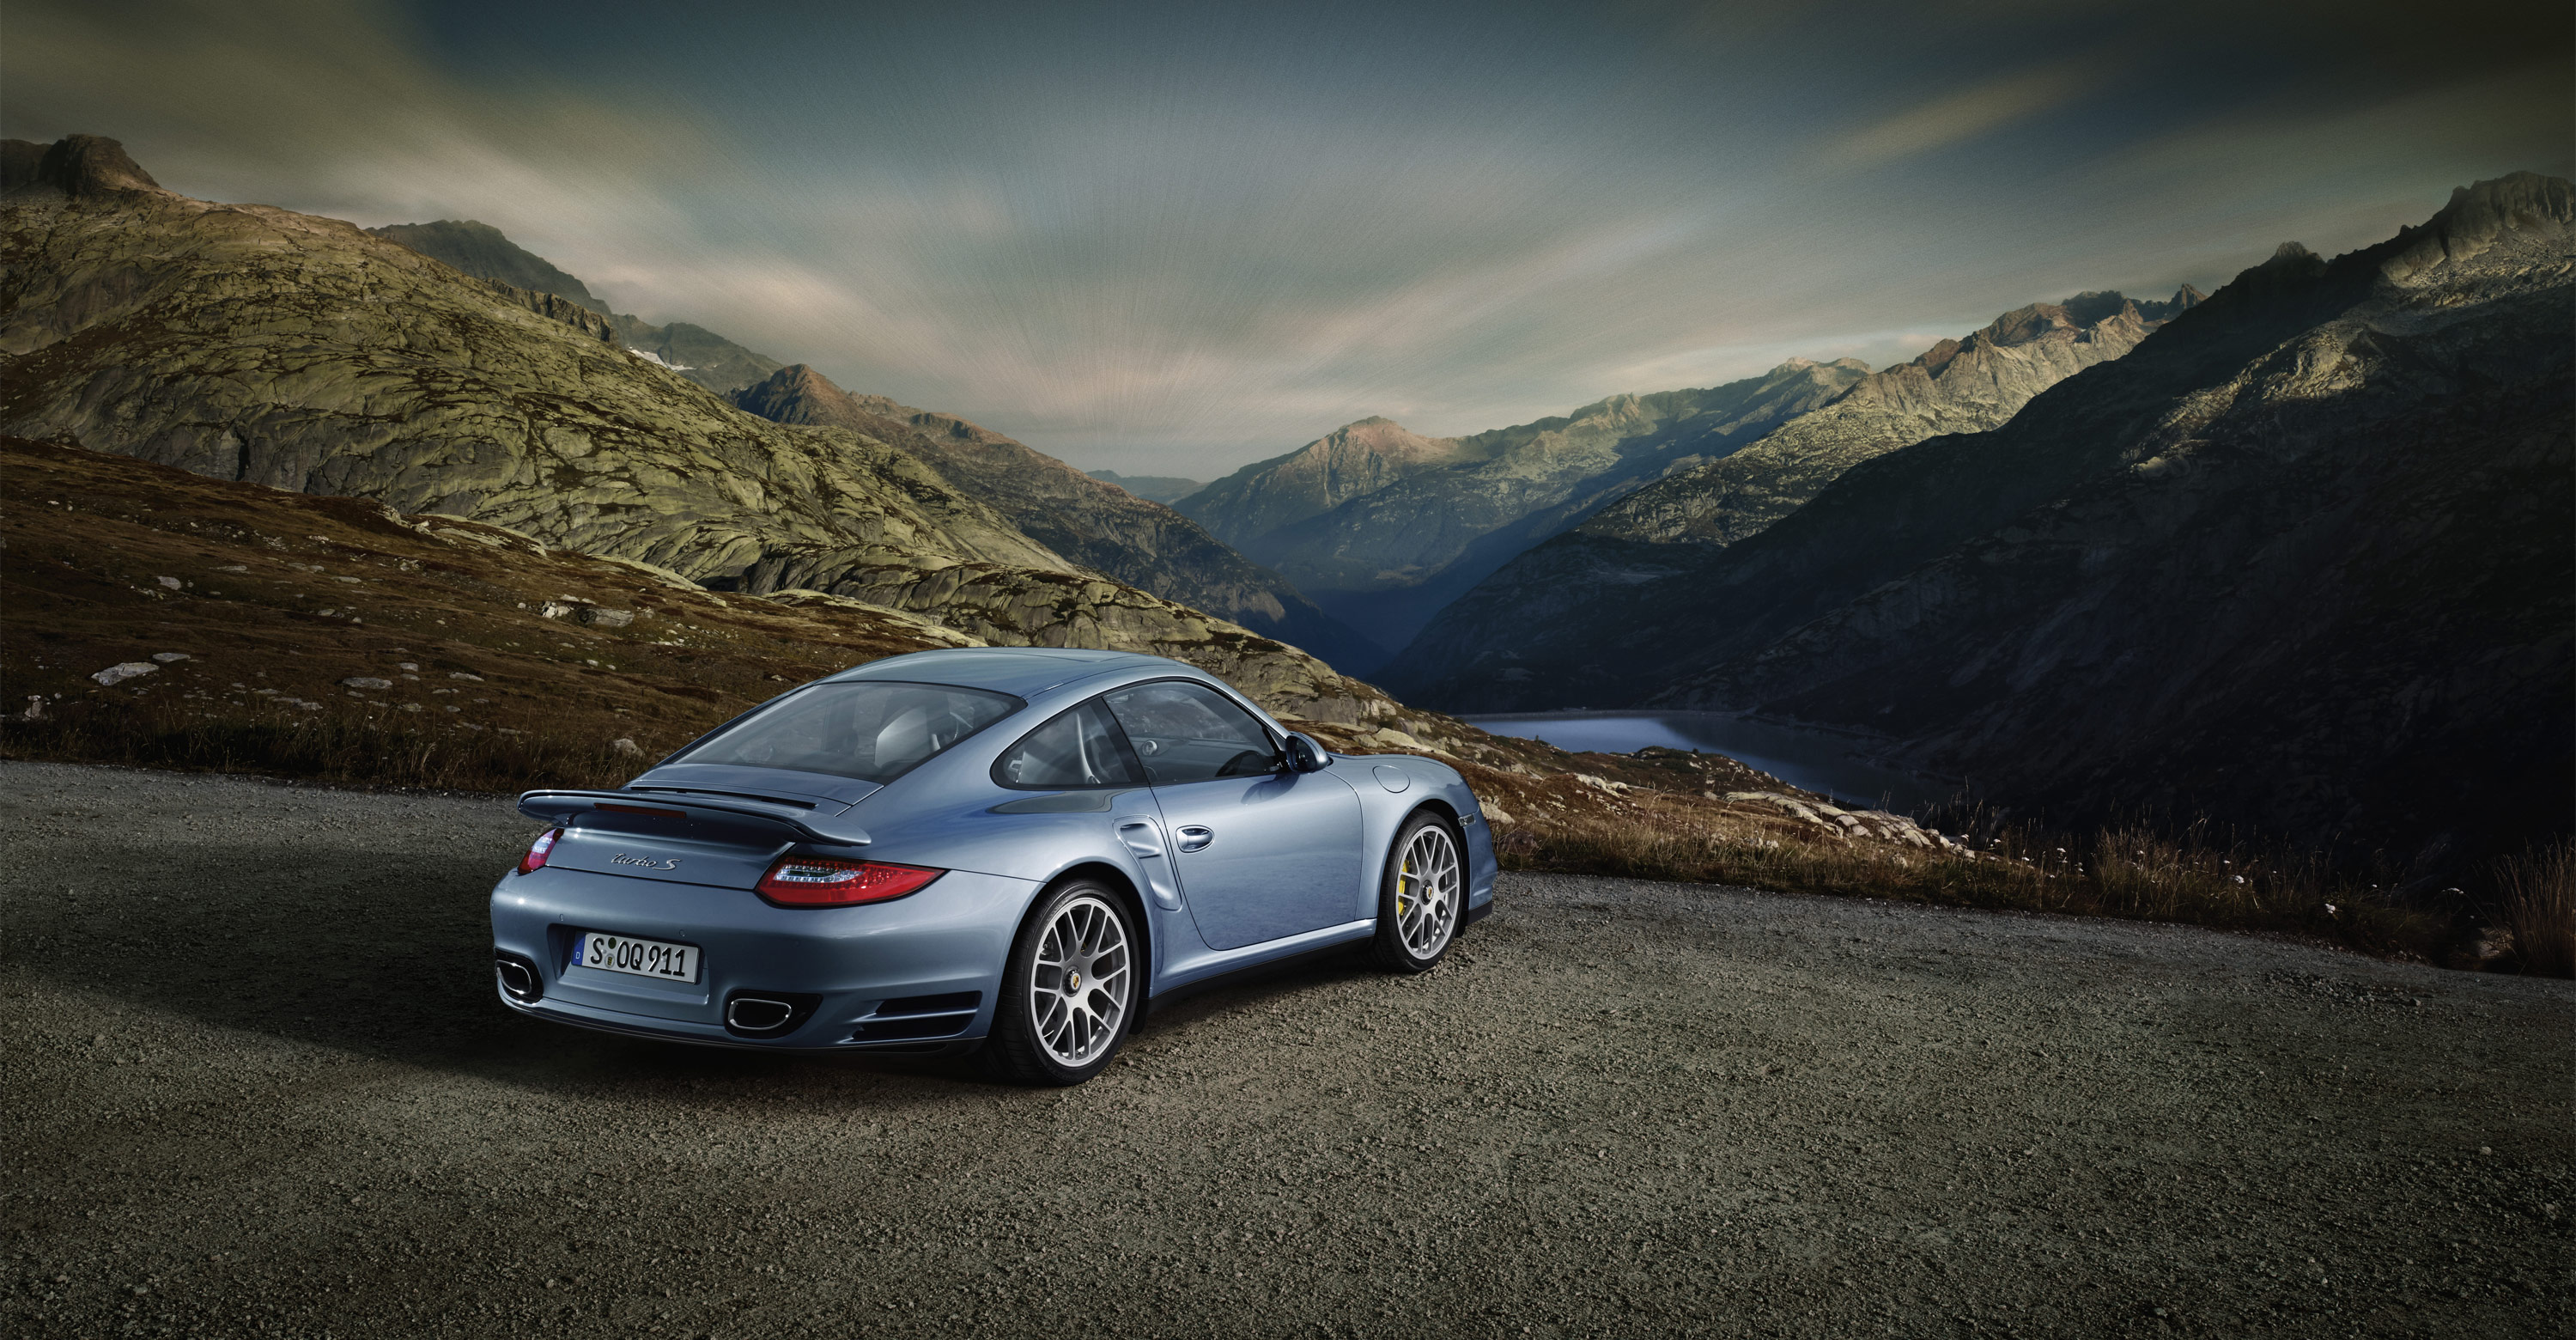 2011 ice blue porsche 911 turbo s wallpapers. Black Bedroom Furniture Sets. Home Design Ideas